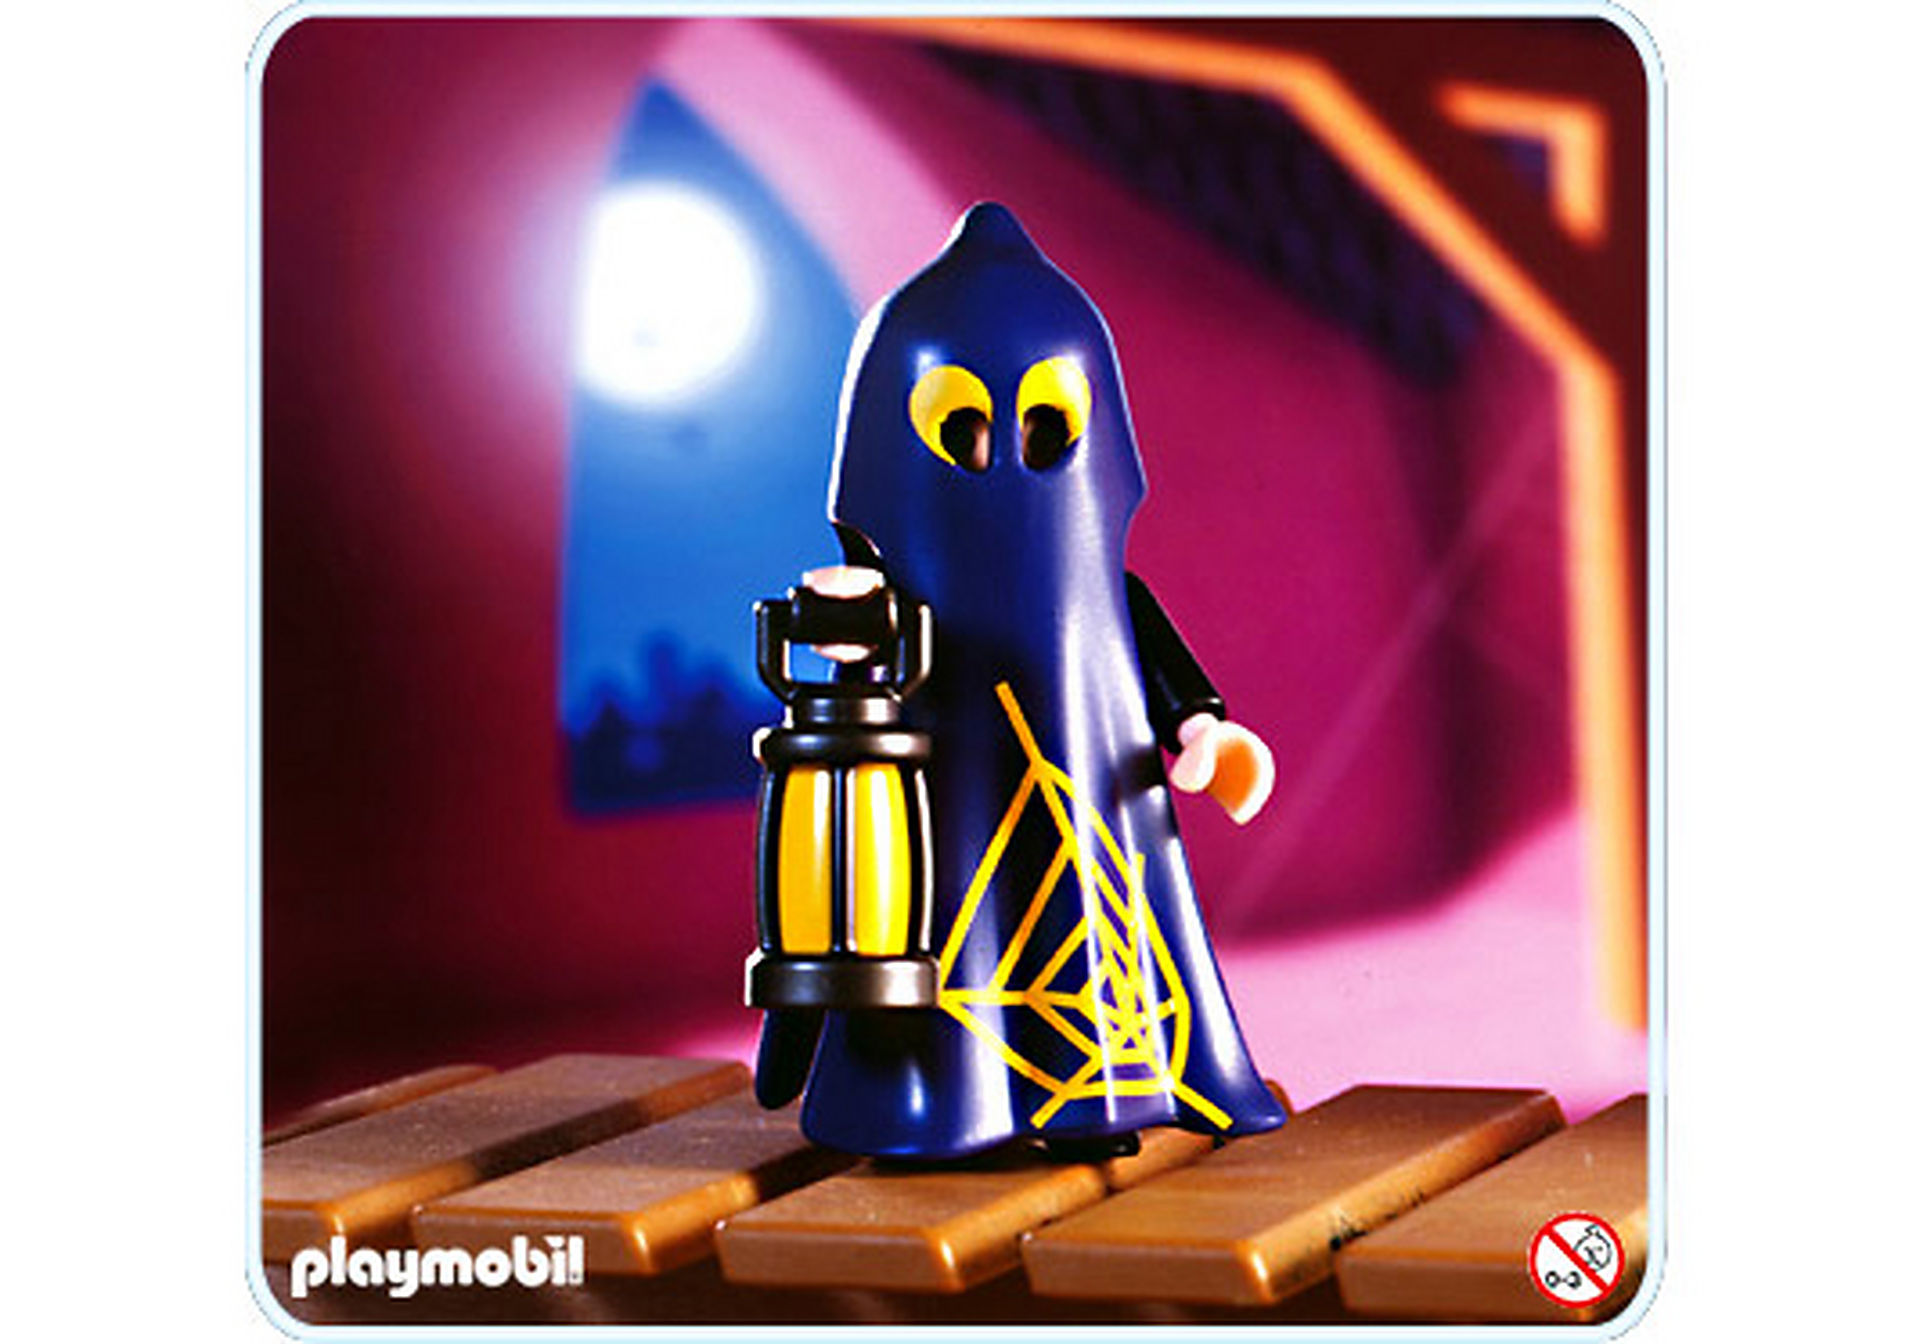 http://media.playmobil.com/i/playmobil/4574-A_product_detail/Kleines Gespenst